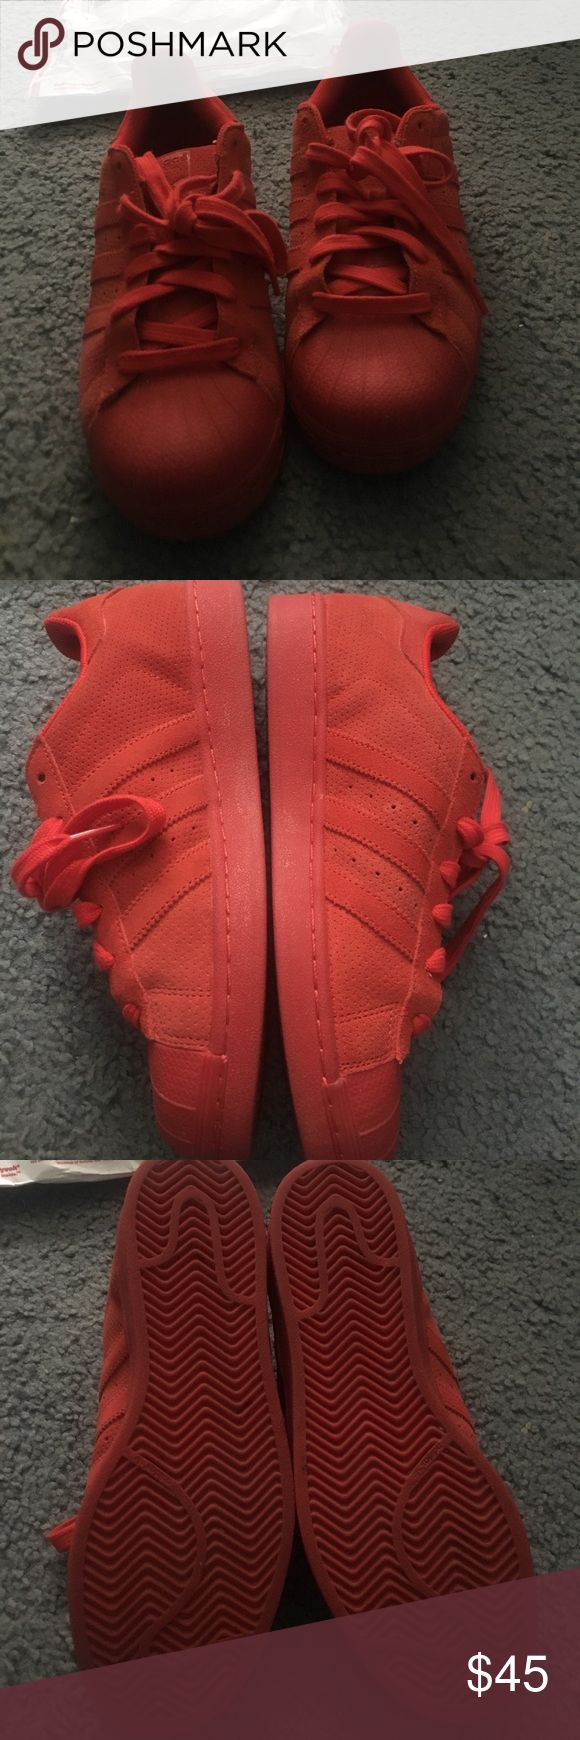 Adidas Red Suede Superstar sneakers men's 7/wmns 9 Can fit a women's 8.5 or 9. Size 7 in men's. 10/10 new condition.A buyer just bought these from me and claimed something was wrong w/ them and then sent them back in the exact condition I sent them in. Please don't buy just to return or I'll block you from the rest of my listings. Material is Suede with red color. Hard to find very unique. Willing to negotiate price, would just like to sell these fast. Make offers!! Shoes Sneakers